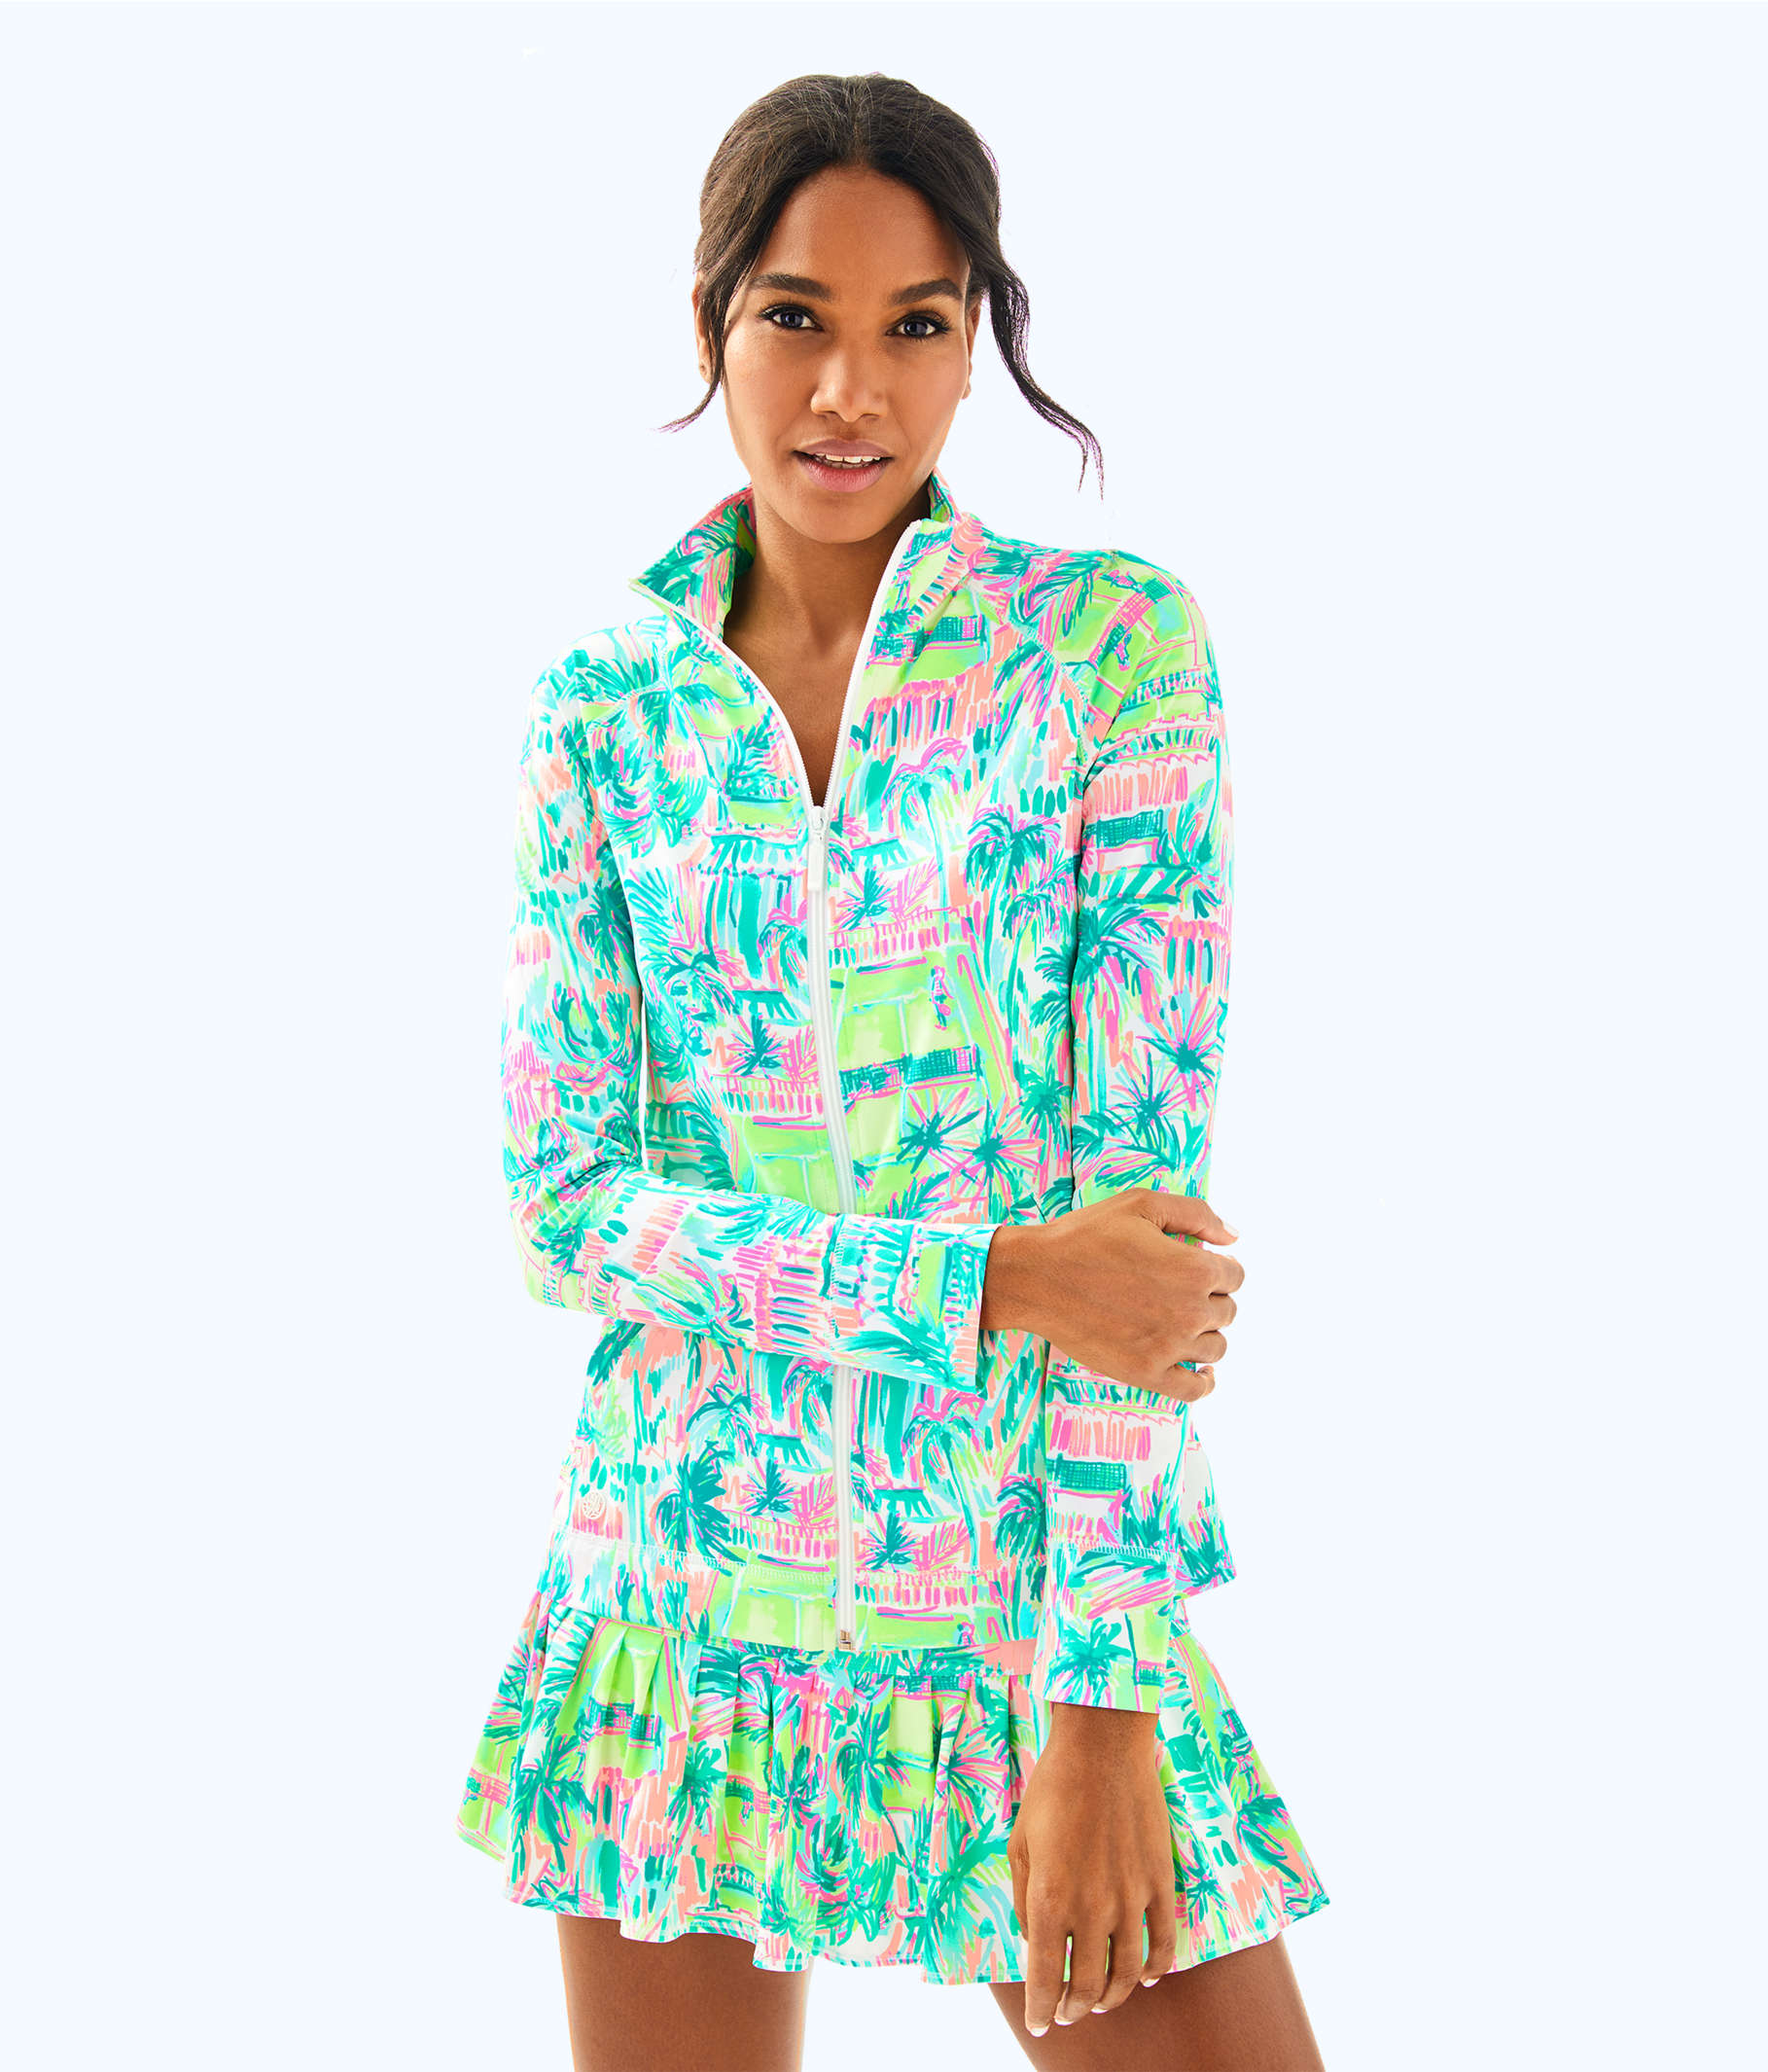 Sale 2018 Unisex UPF 50+ Meryl Nylon Luxletic Hadlee Tennis Jacket Lilly Pulitzer Countdown Package Cheap Sale Visit New Clearance Online Official Site 100% Original Sale Online TYfXBIqXq